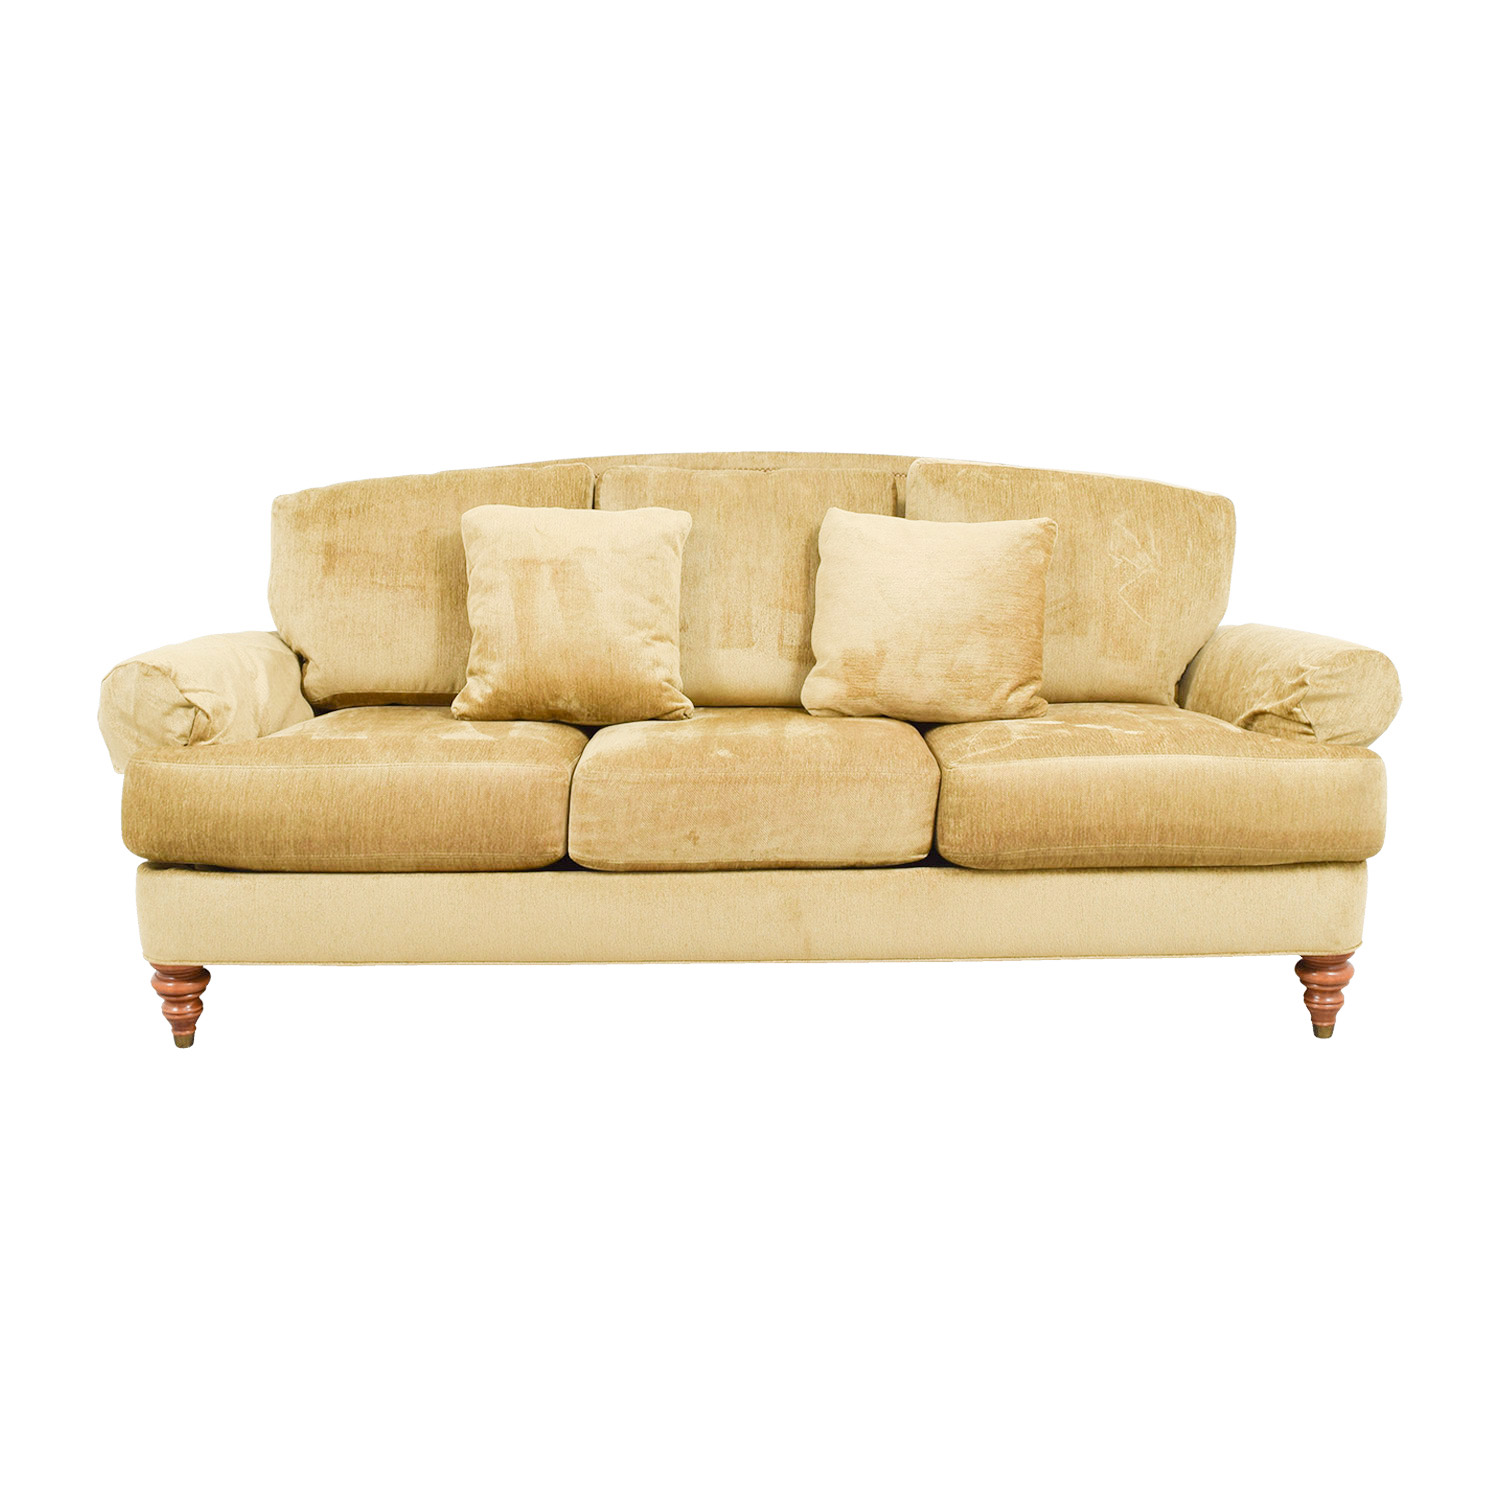 Ethan Allen Ethan Allen Hyde Gold Three-Cushion Comfort Sofa for sale